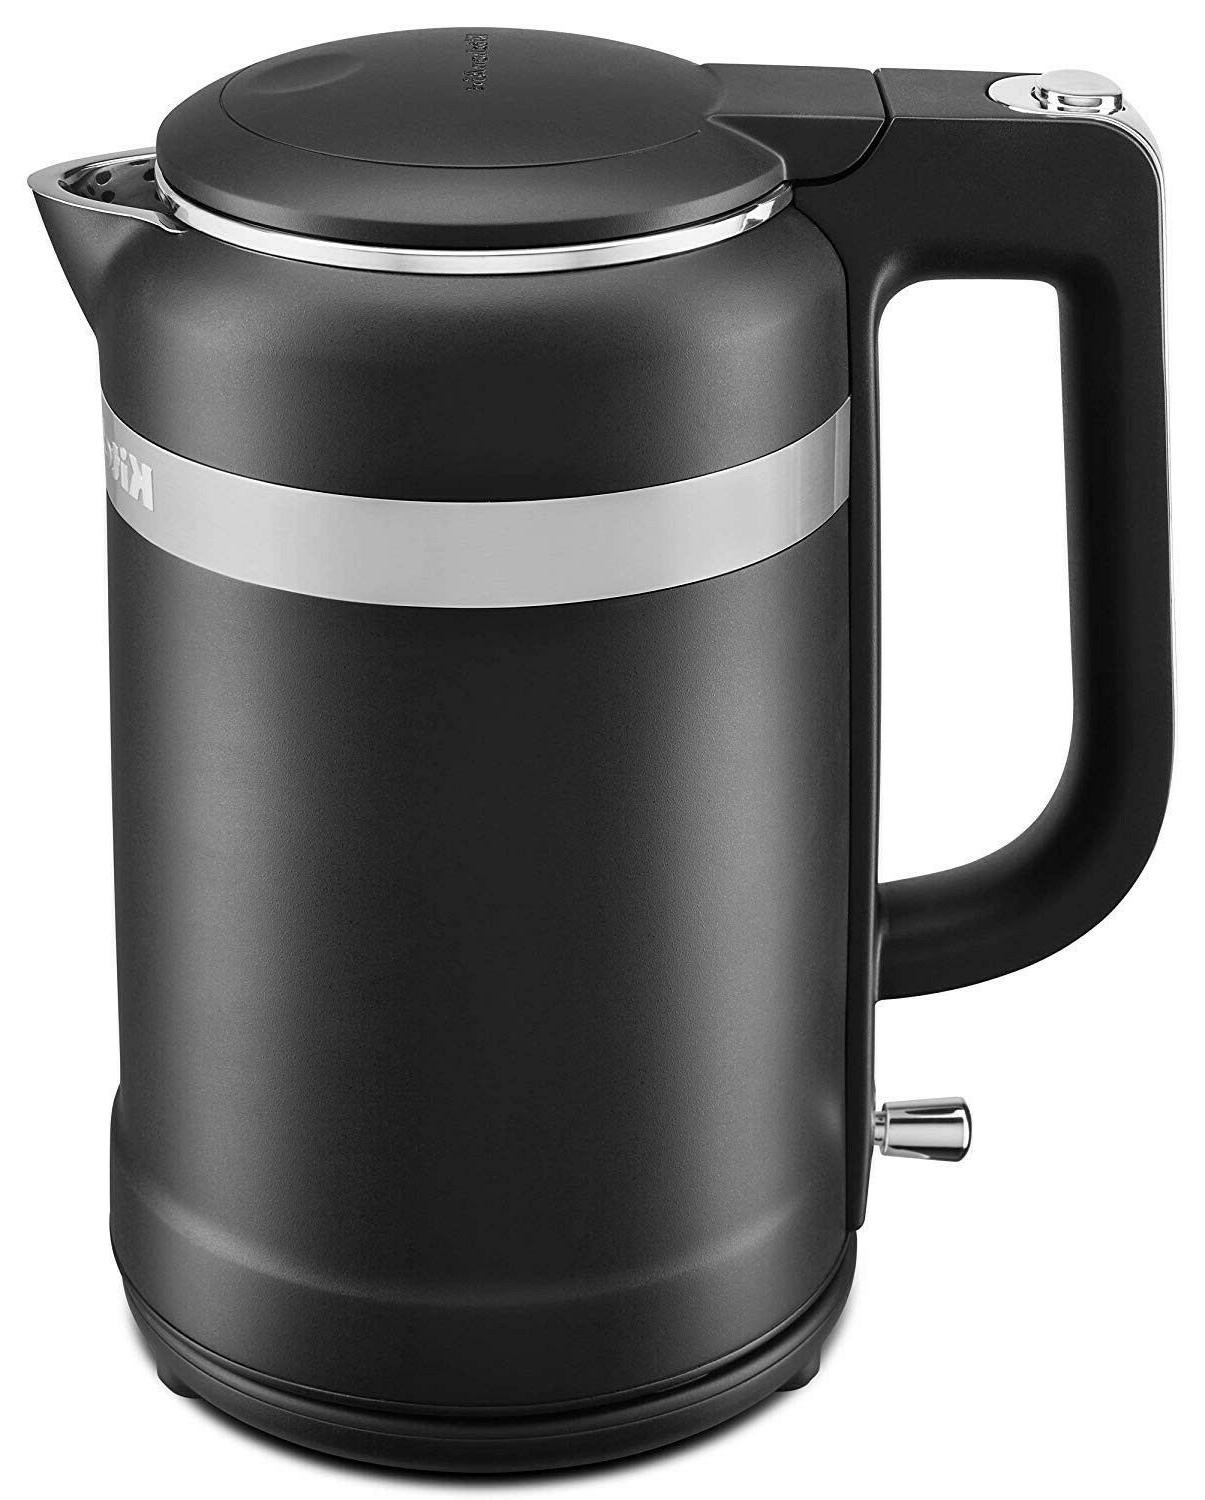 KitchenAid KEK1565BM 1.5-Liter Electric Kettle with LED Display -Black  Matte NEW